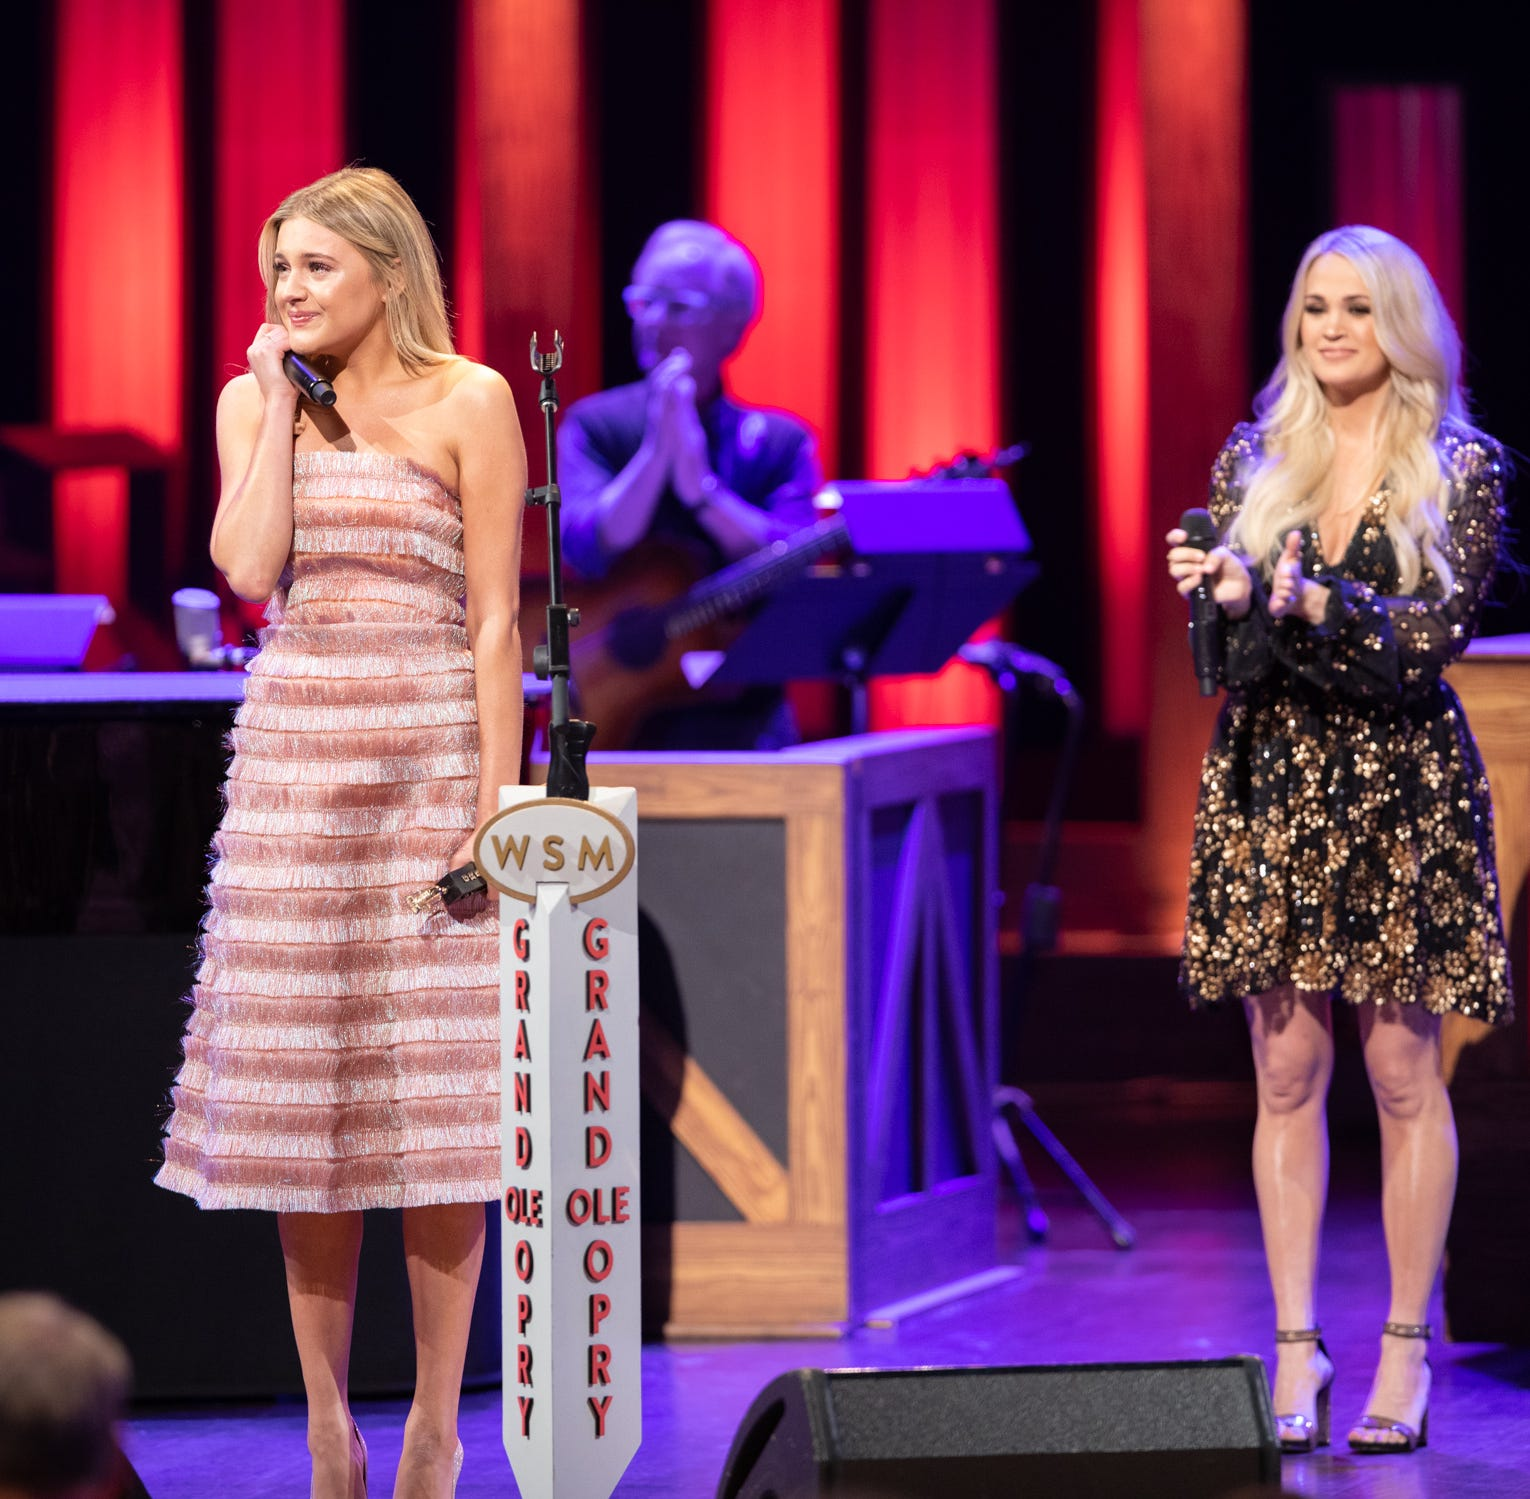 Kelsea Ballerini comes full circle at Opry, thanks to Carrie Underwood